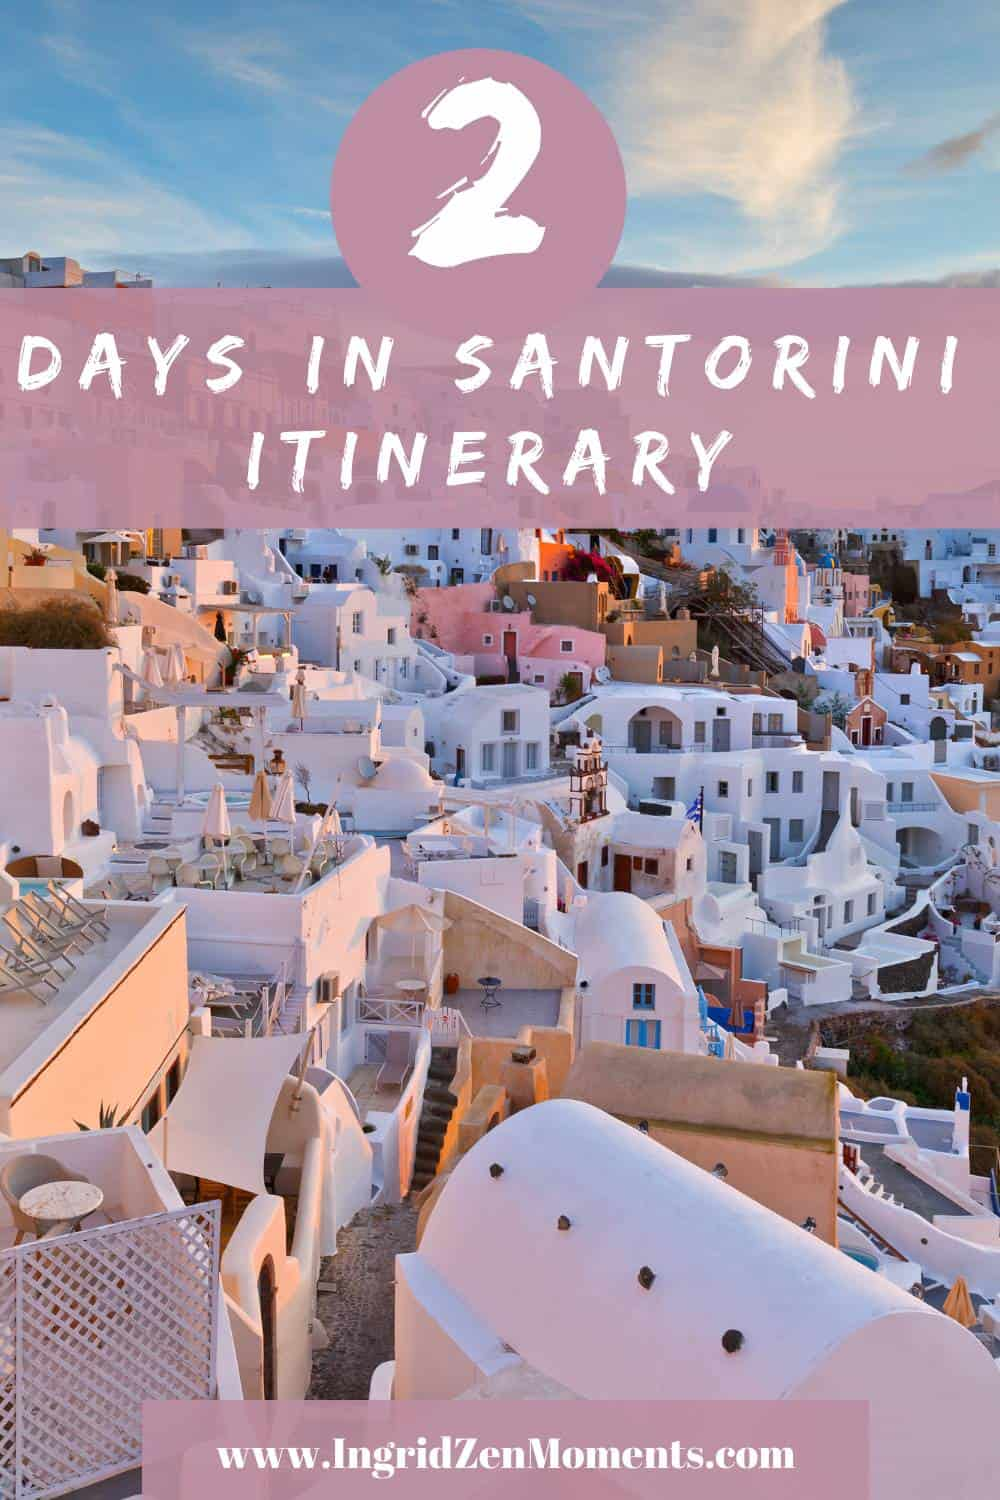 2 days in Santorini itinerary guide